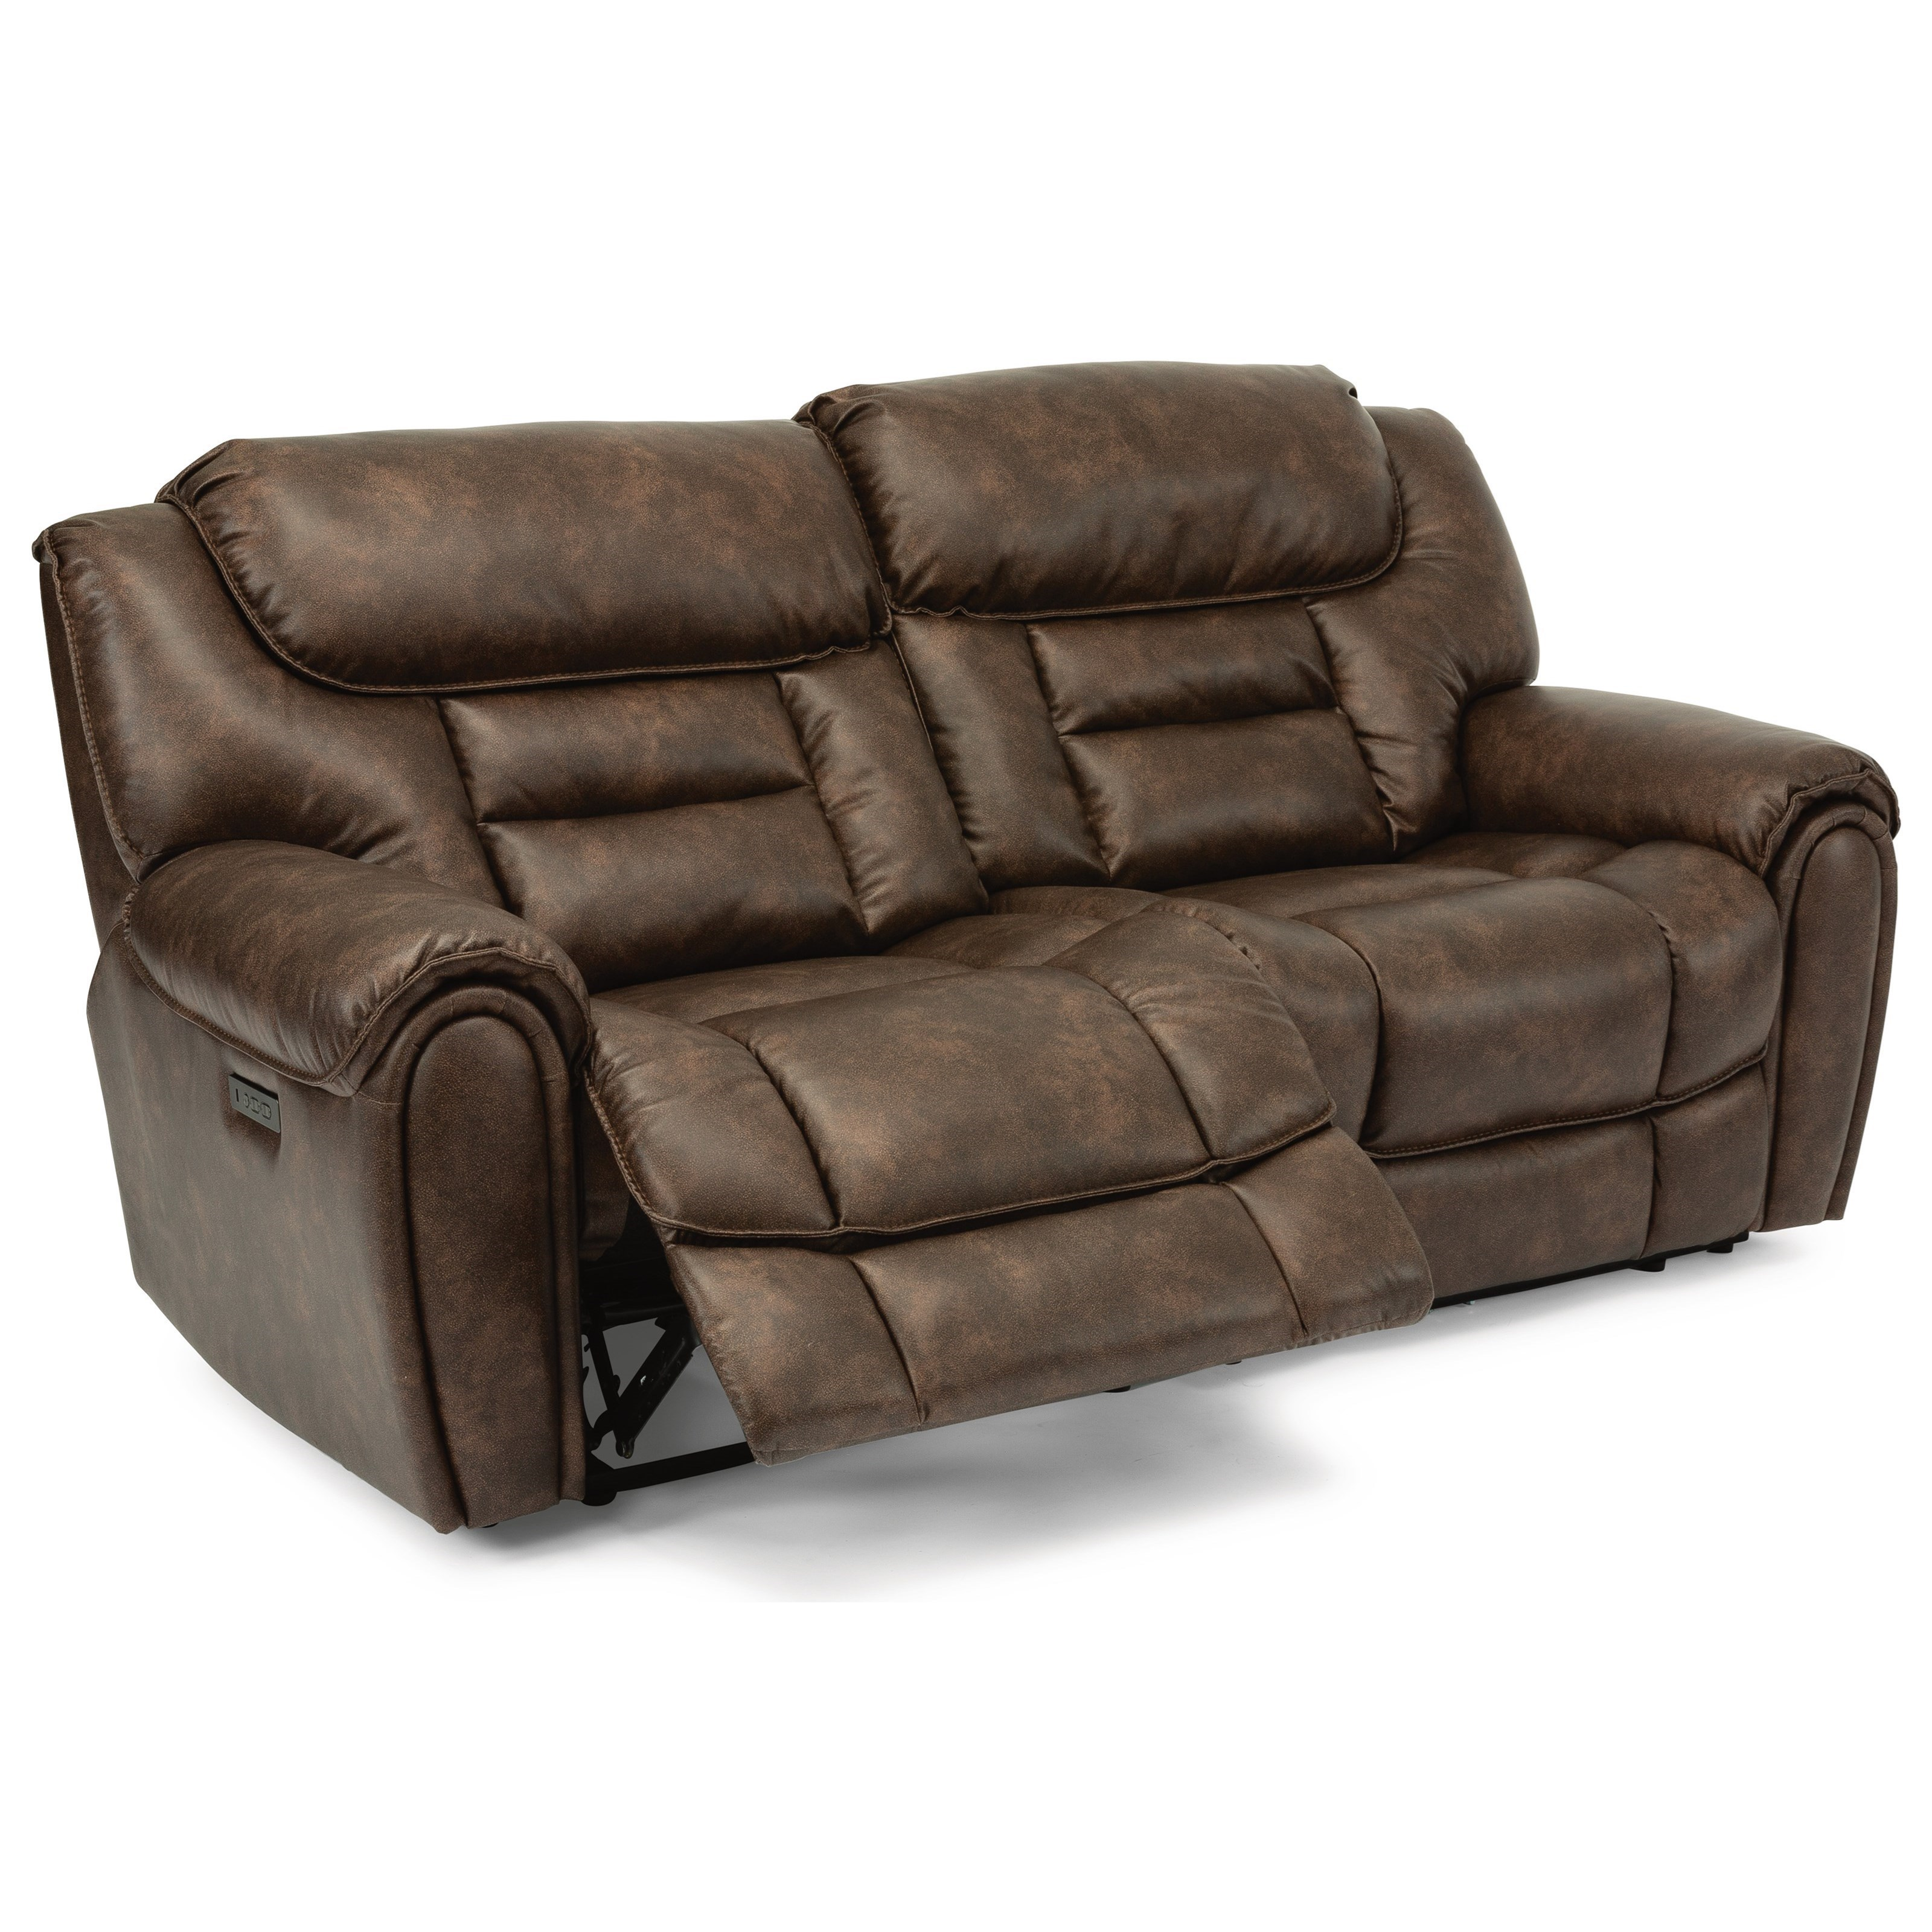 Casual Power Reclining Loveseat with Power Headrest and USB Ports